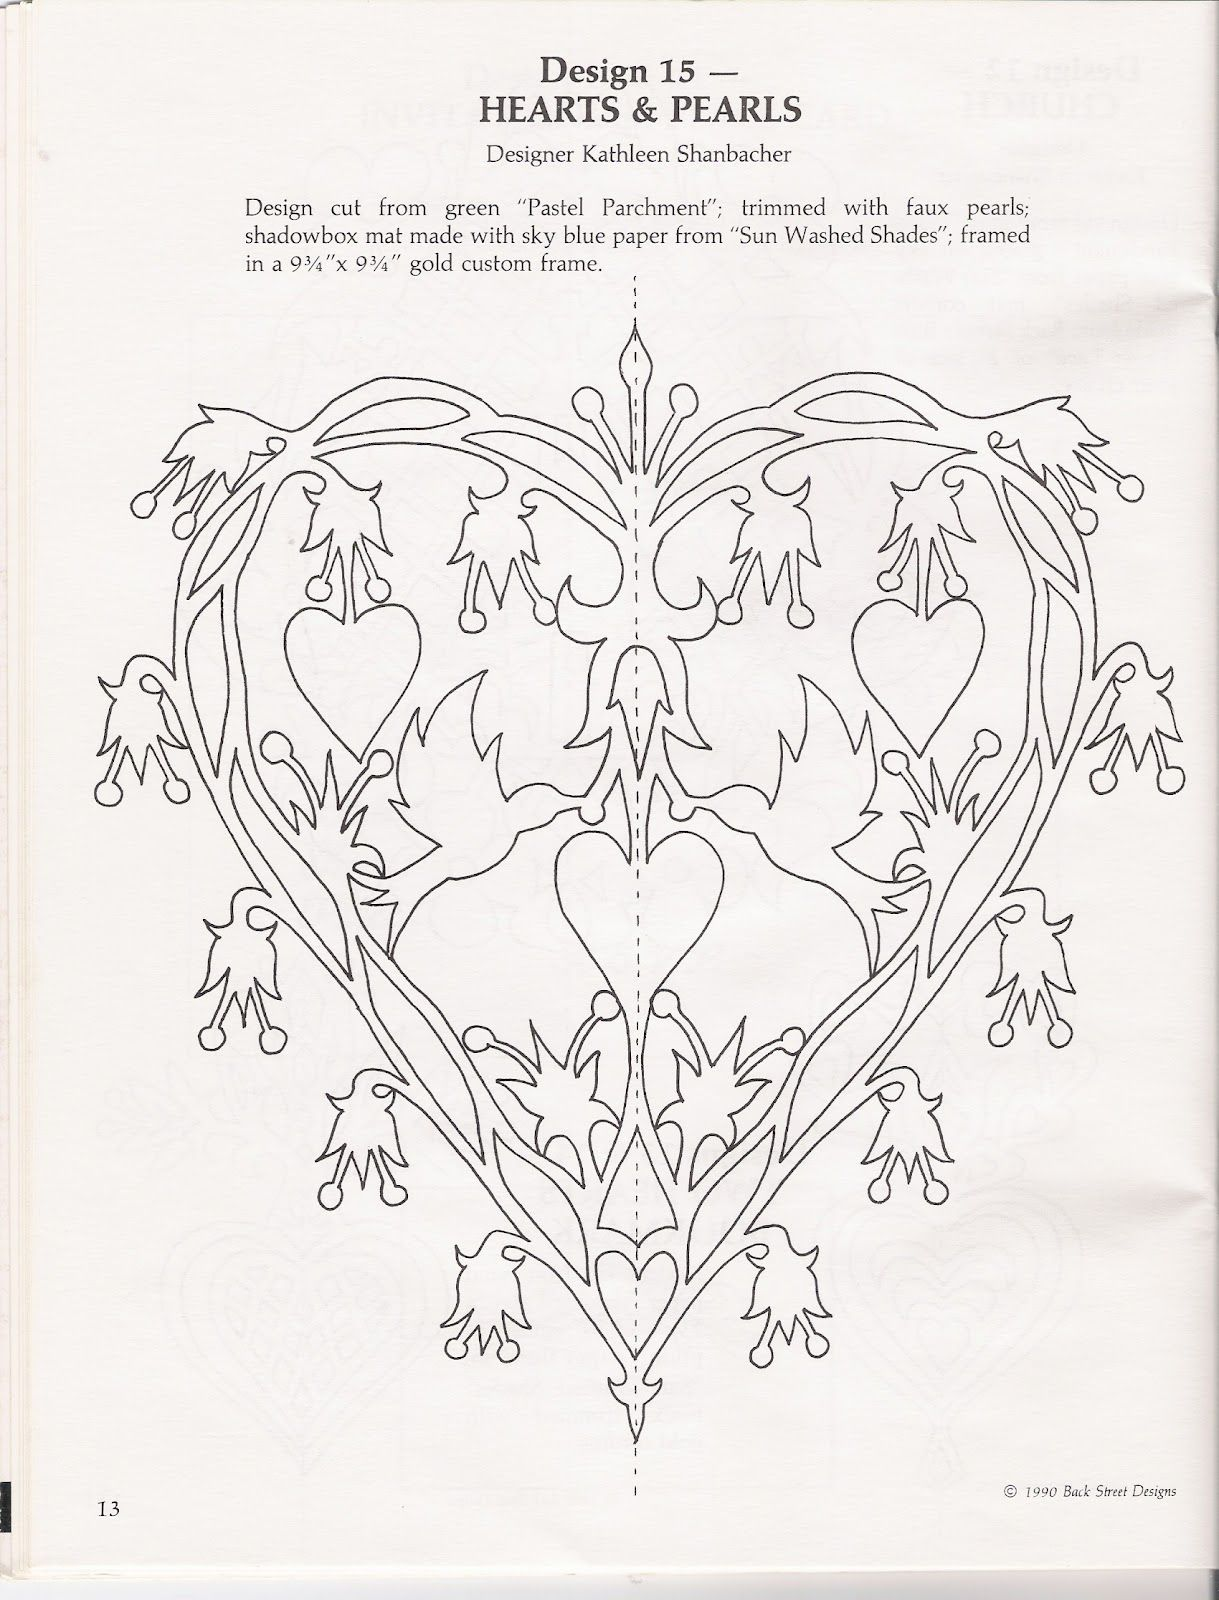 Hearts and Pearls pattern inkspired musings: Peace doves